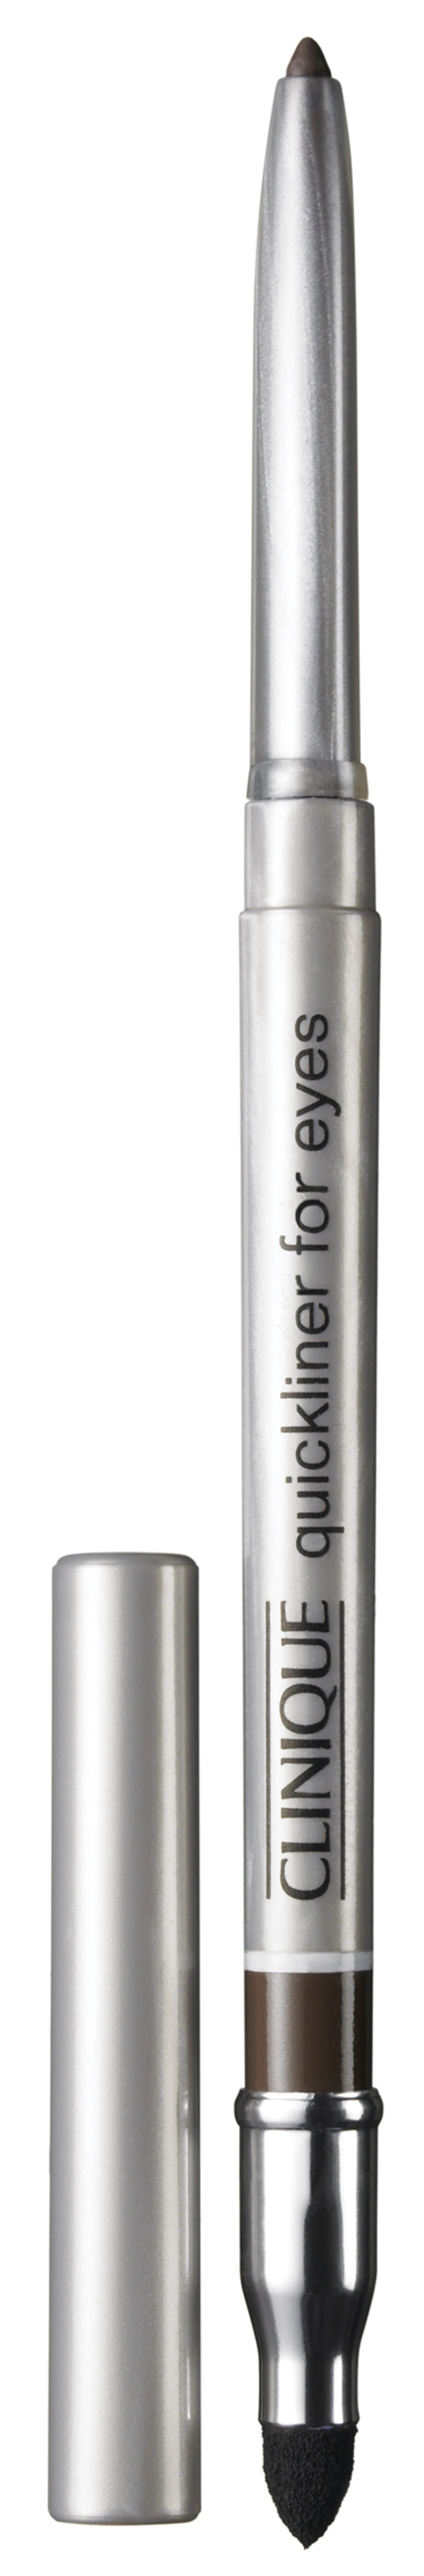 Clinique Quickliner For Eyes, blue grey